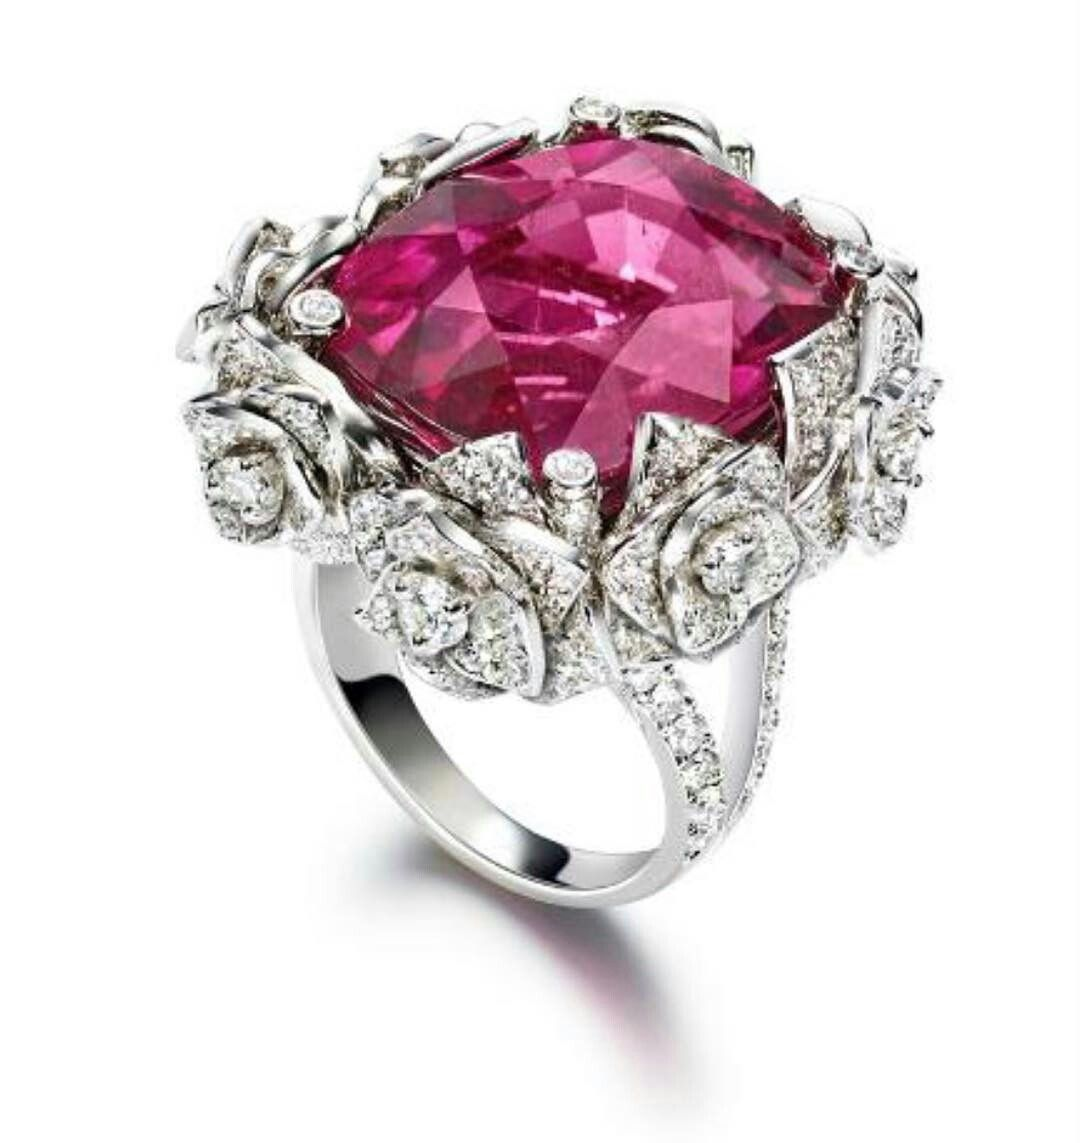 cd0a50a7a44adc Stunning Rubellite Ring by @piaget from The Mediterranean Garden  Collection. Cushion cut rubellite approximately 25 surrounded by a  beautiful setting made ...